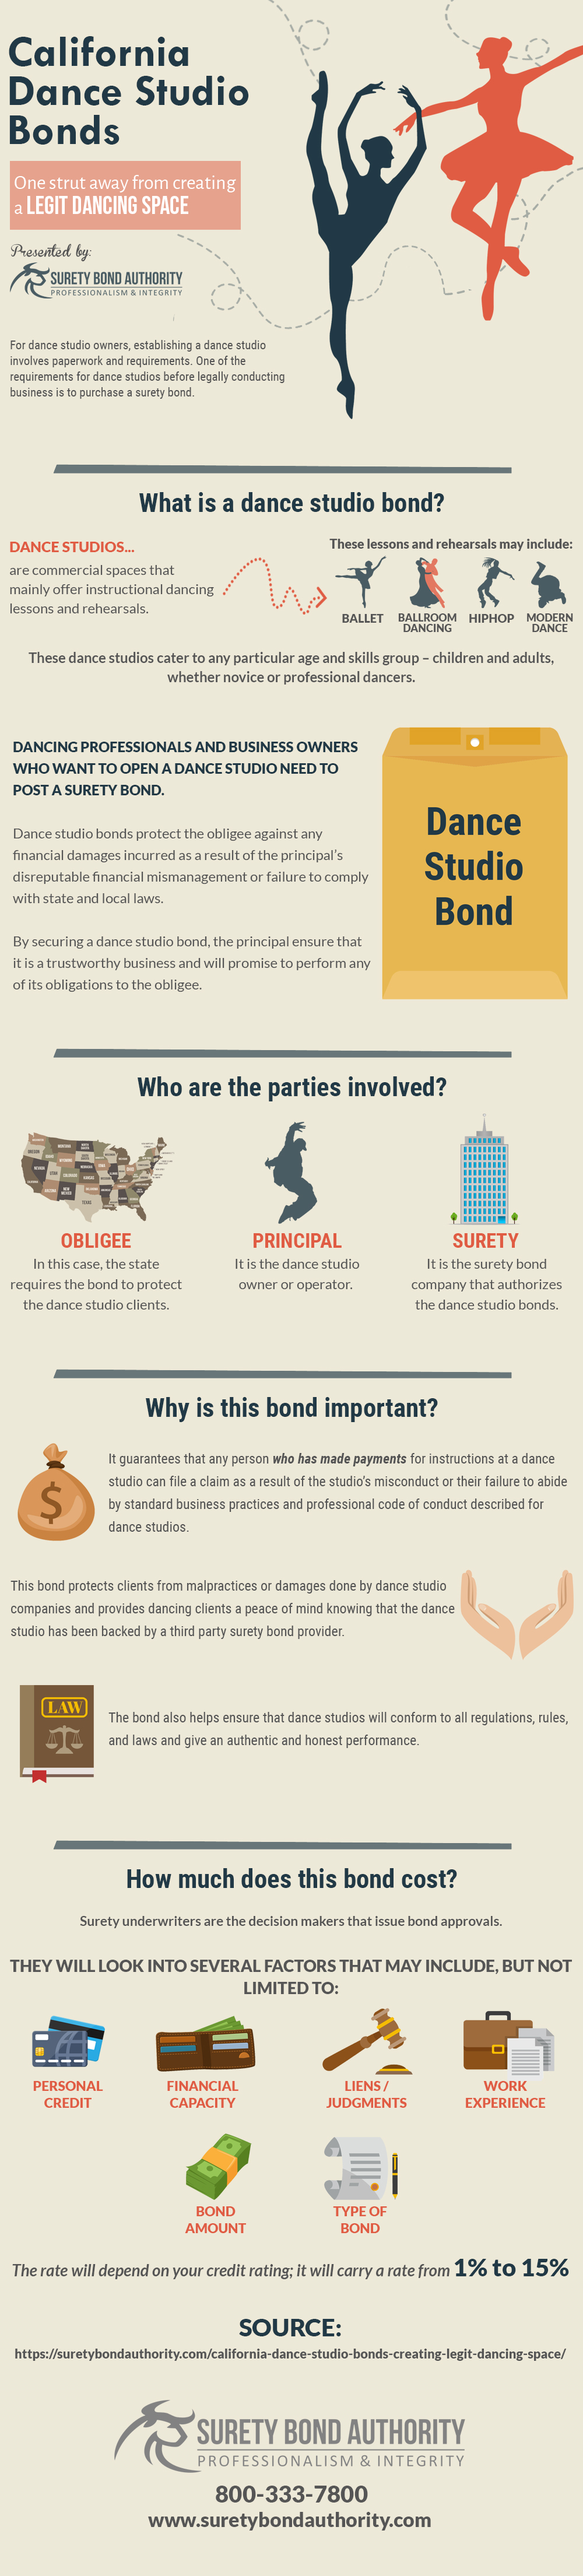 California Dance Studio Bonds Infographic